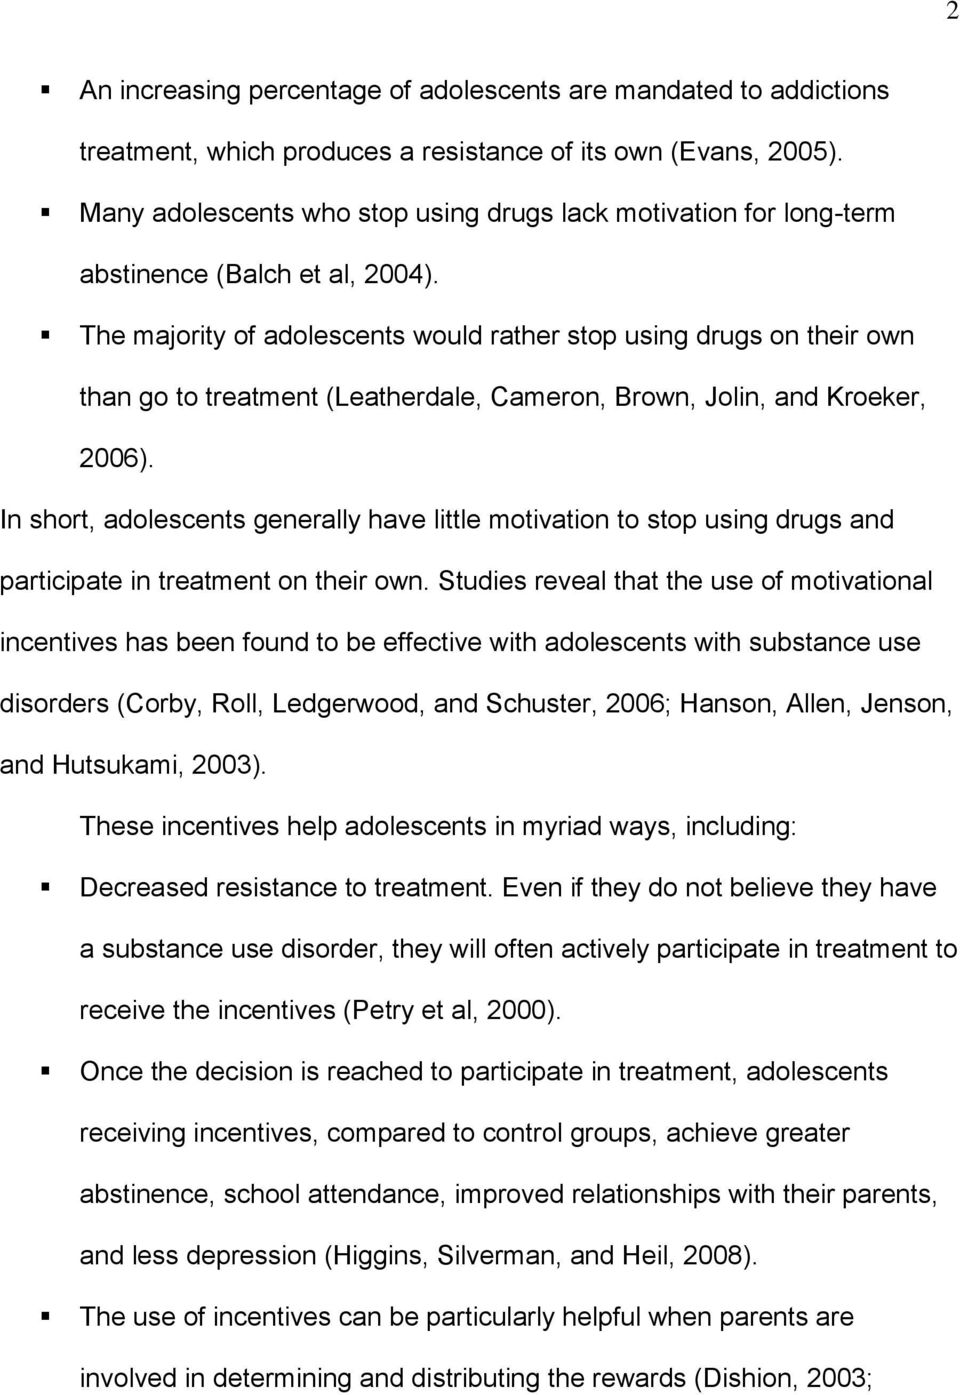 The majority of adolescents would rather stop using drugs on their own than go to treatment (Leatherdale, Cameron, Brown, Jolin, and Kroeker, 2006).